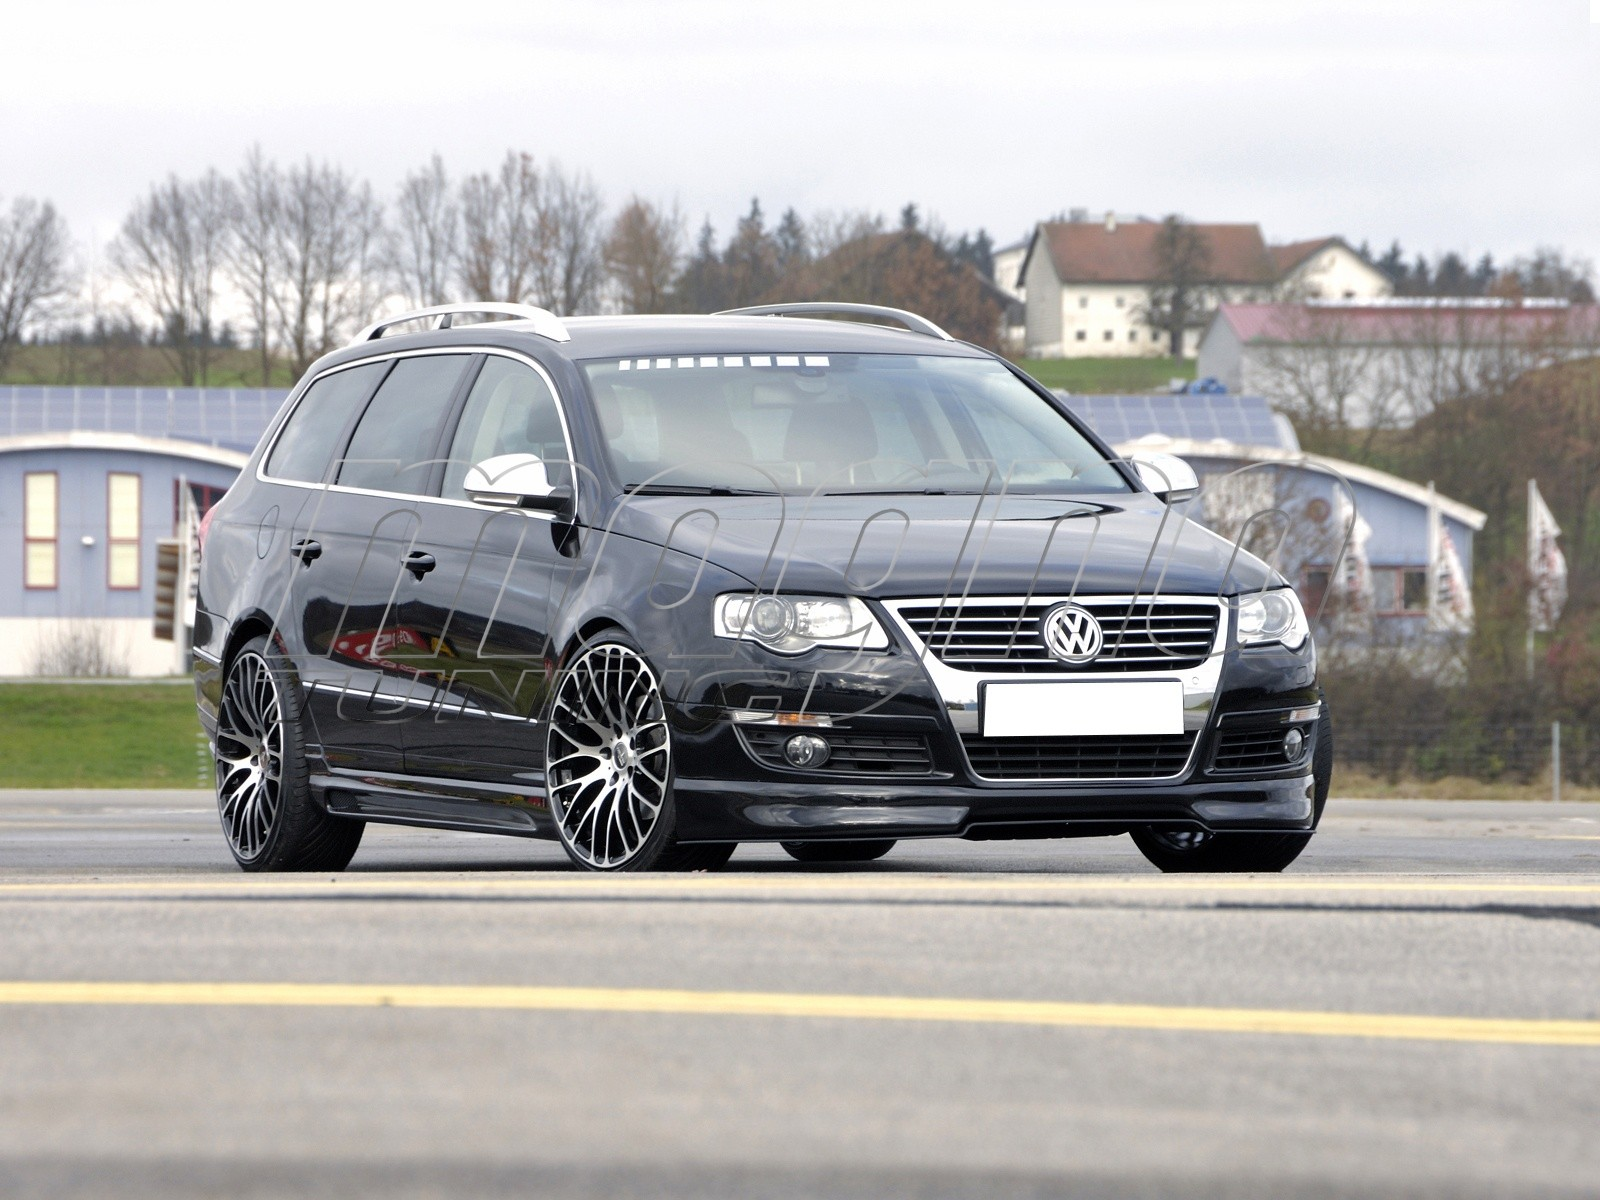 Pictures Volkswagen Passat Wagon B5 2000 05 80242 1024x768 together with VAS 205052 likewise 2948 Tuning Porsche 944 Turbo additionally Crochet Dattelage furthermore Wallpapers Volkswagen Passat Sedan B5 1997 2000 159468. on vw passat b5